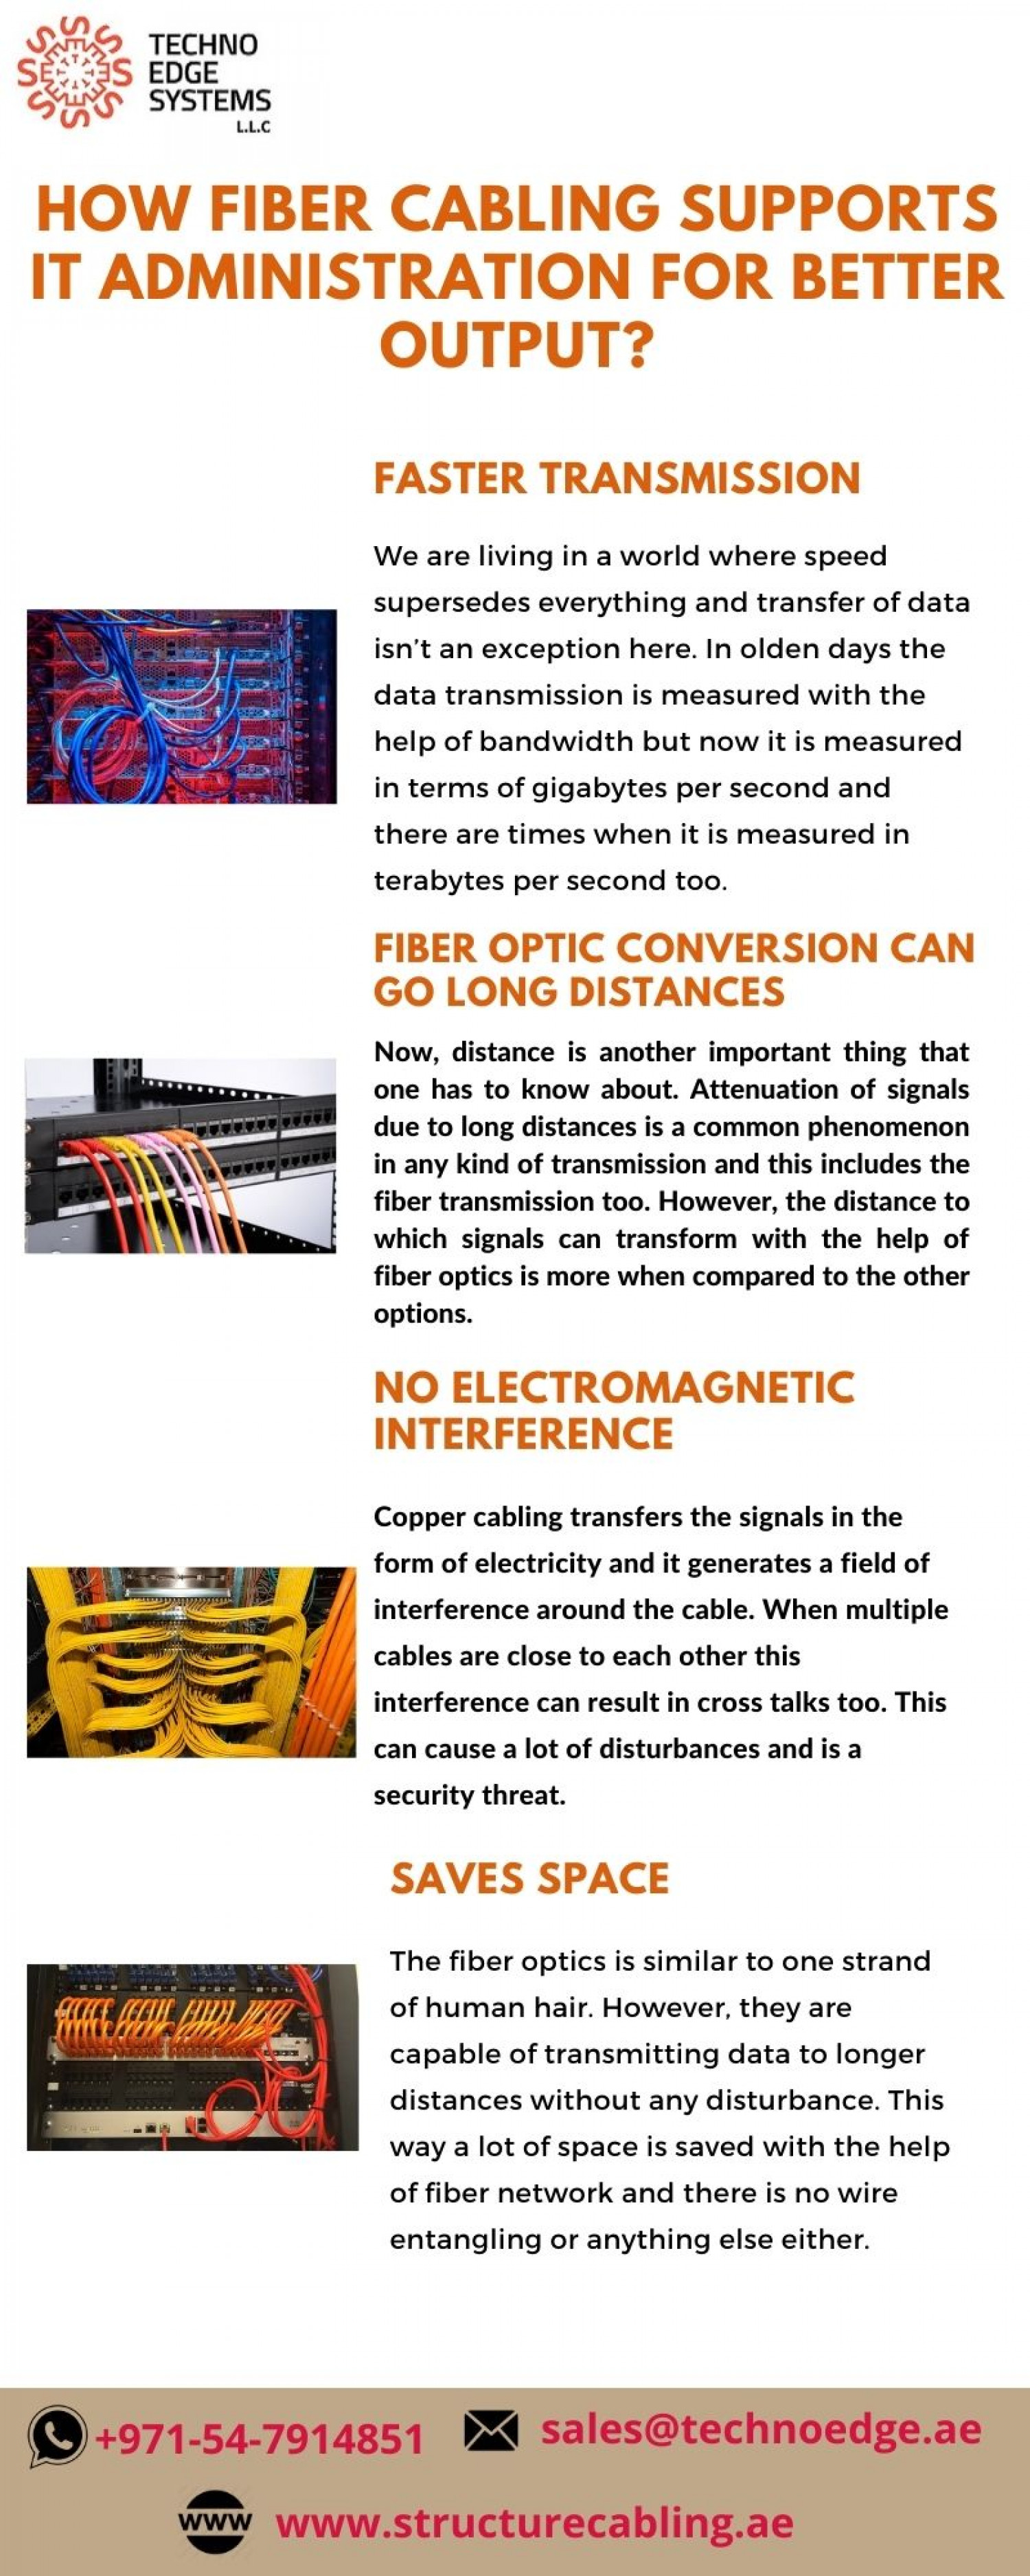 How Fiber Cabling Supports IT Administration for Better Output? Infographic